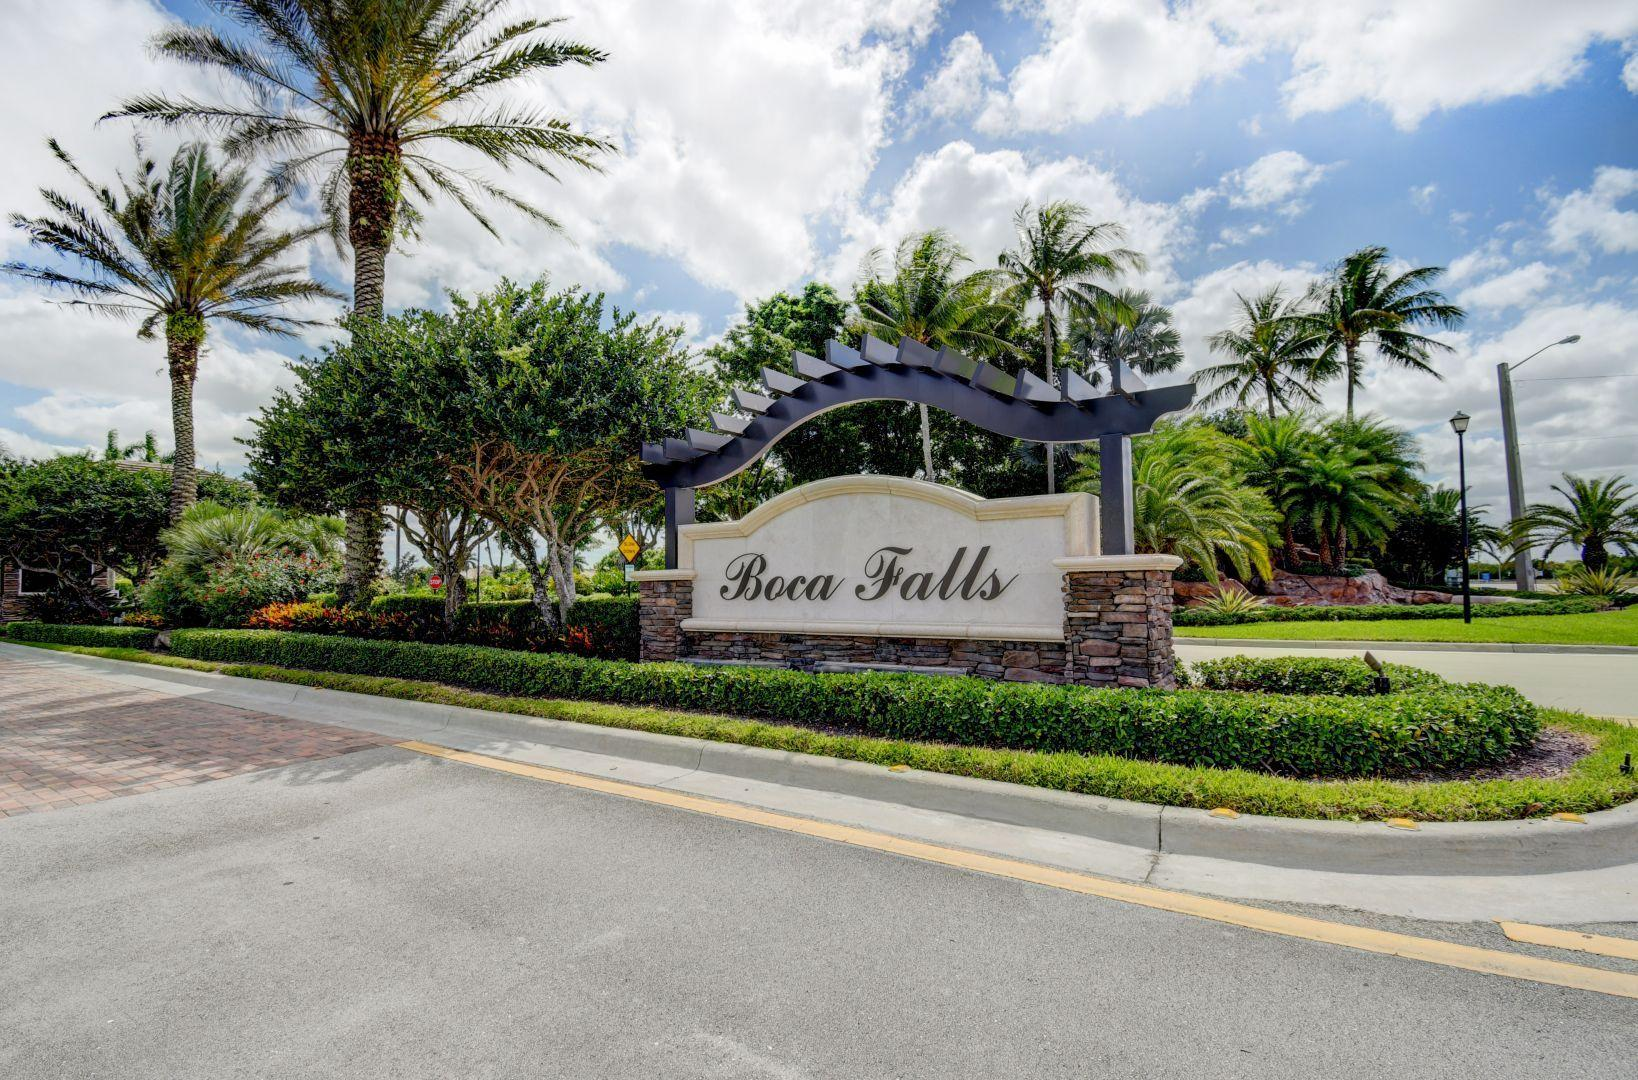 BOCA FALLS REAL ESTATE